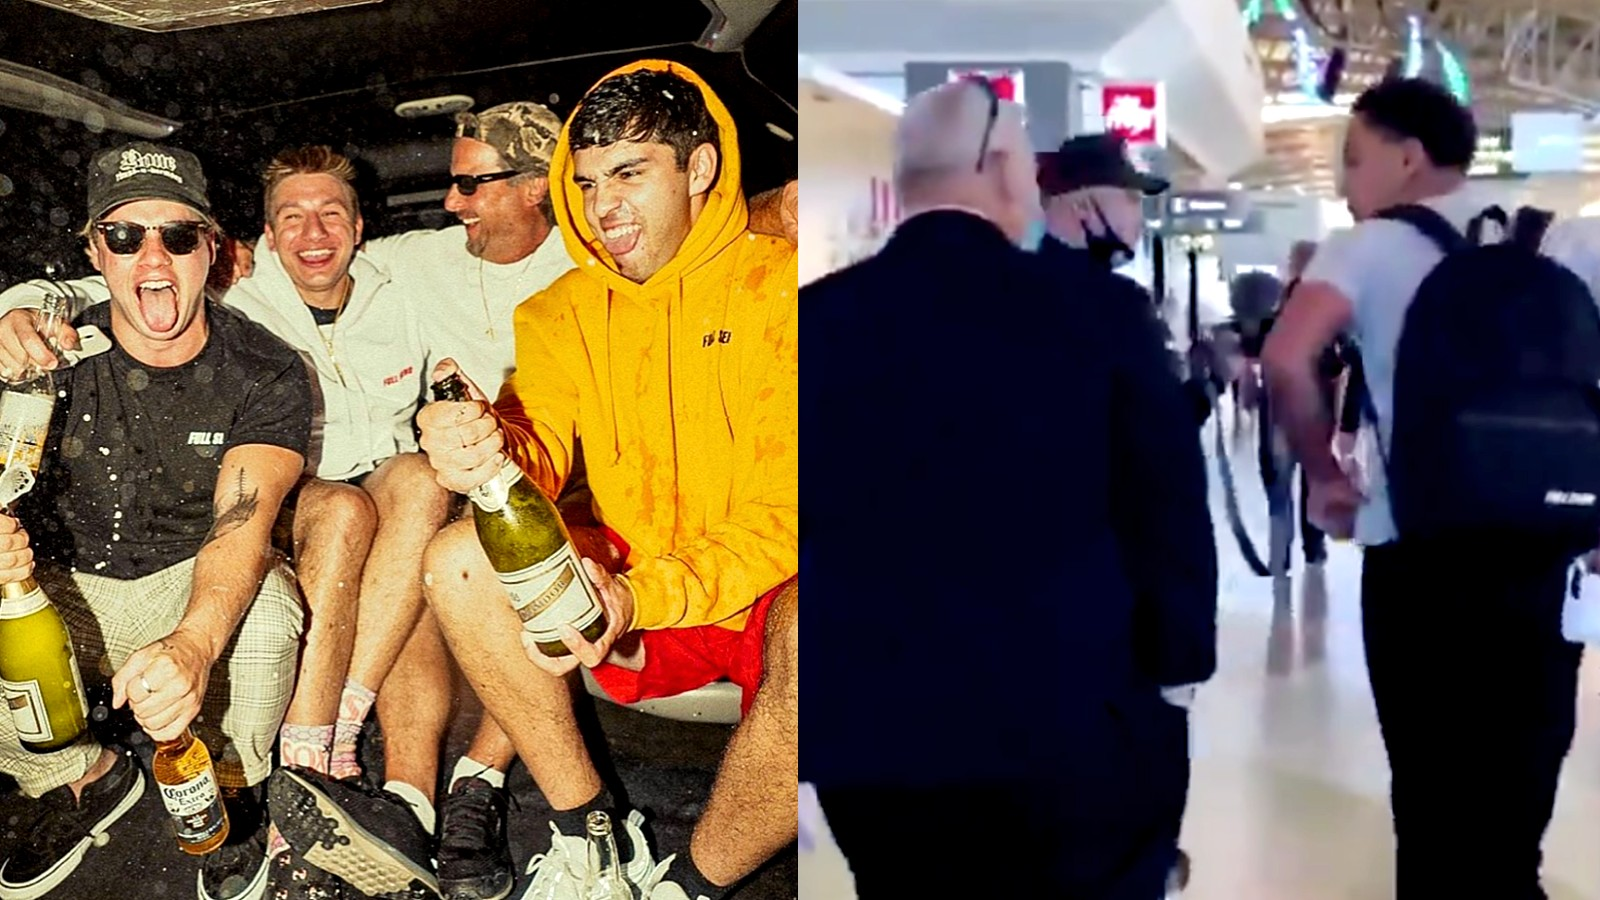 Image of the NELK boys next to image of them being apprehended by secret service